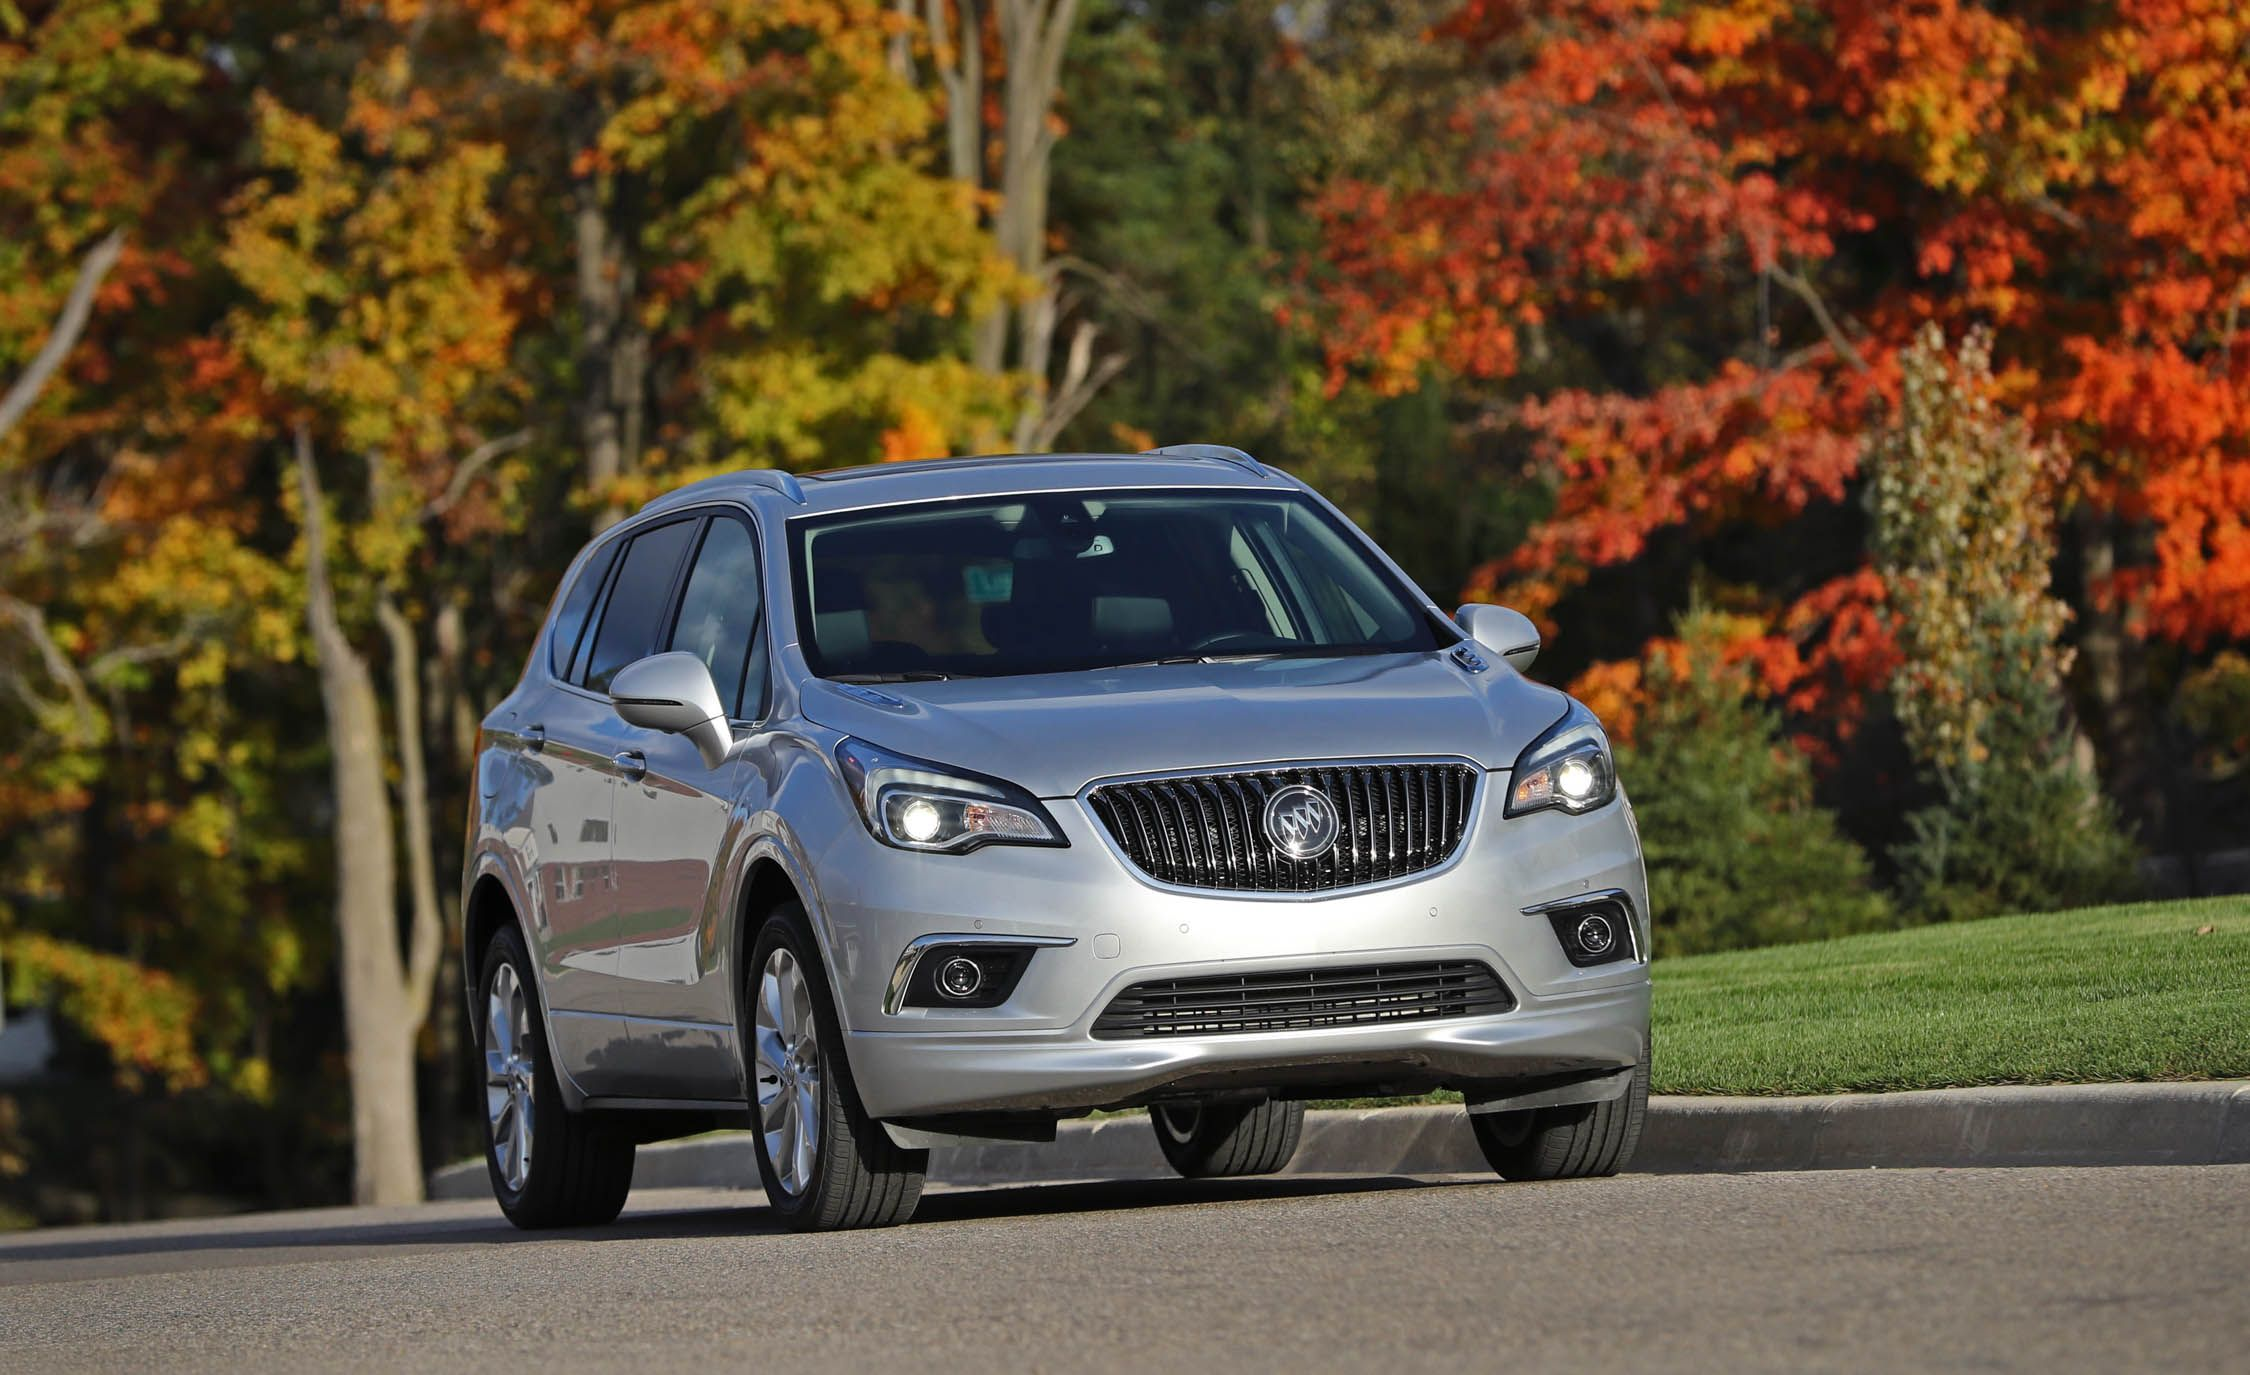 cars suv story top buick size shocks s this reports reliability auto brand mid survey u consumer money puts by lauding